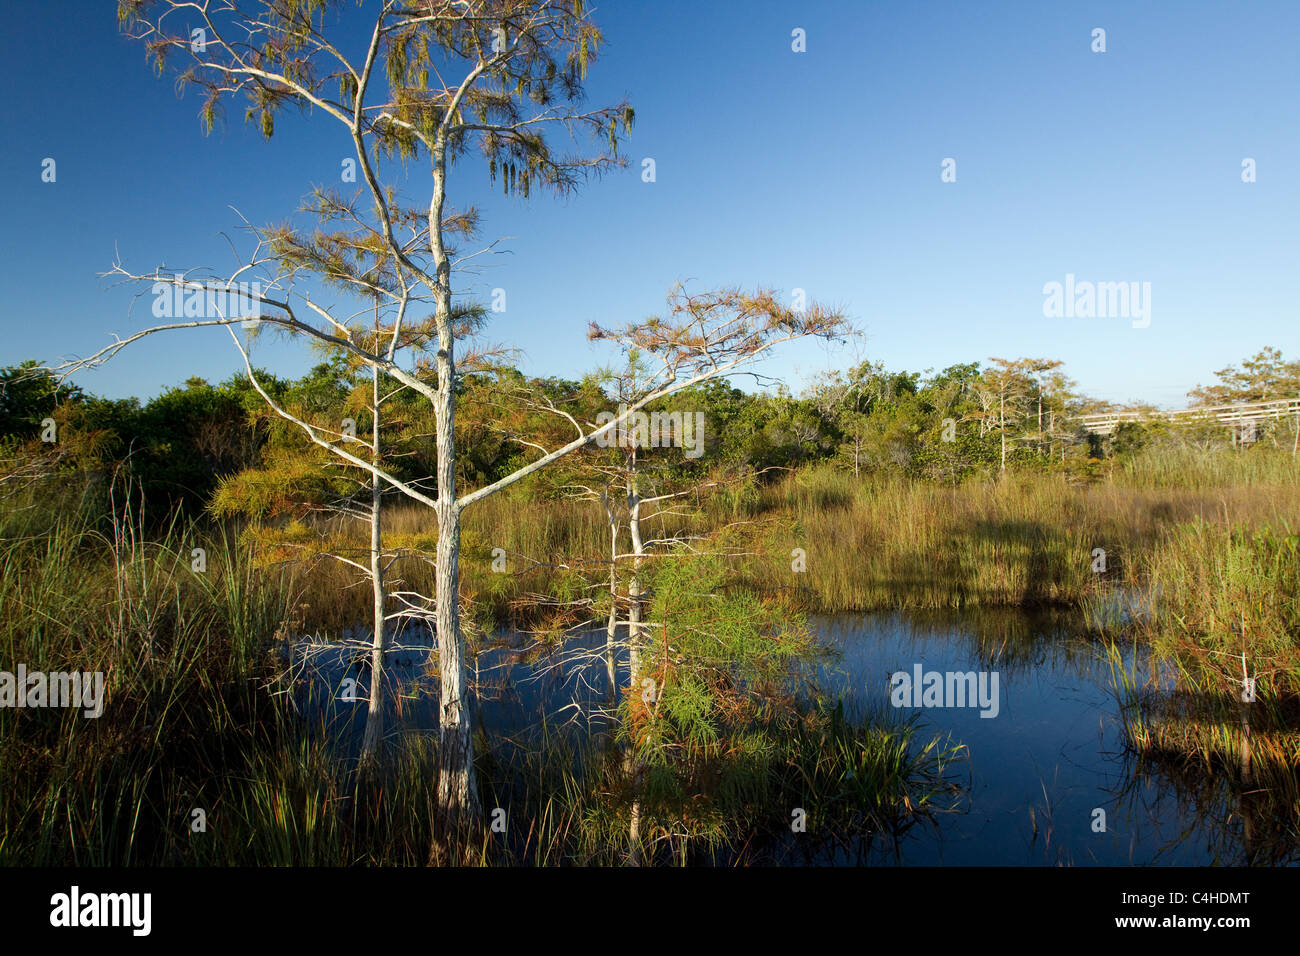 Bald cypress trees, Taxodium distichum, Pa-hay-okee Trail Overlook, Everglades National Park, Florida, USA - Stock Image